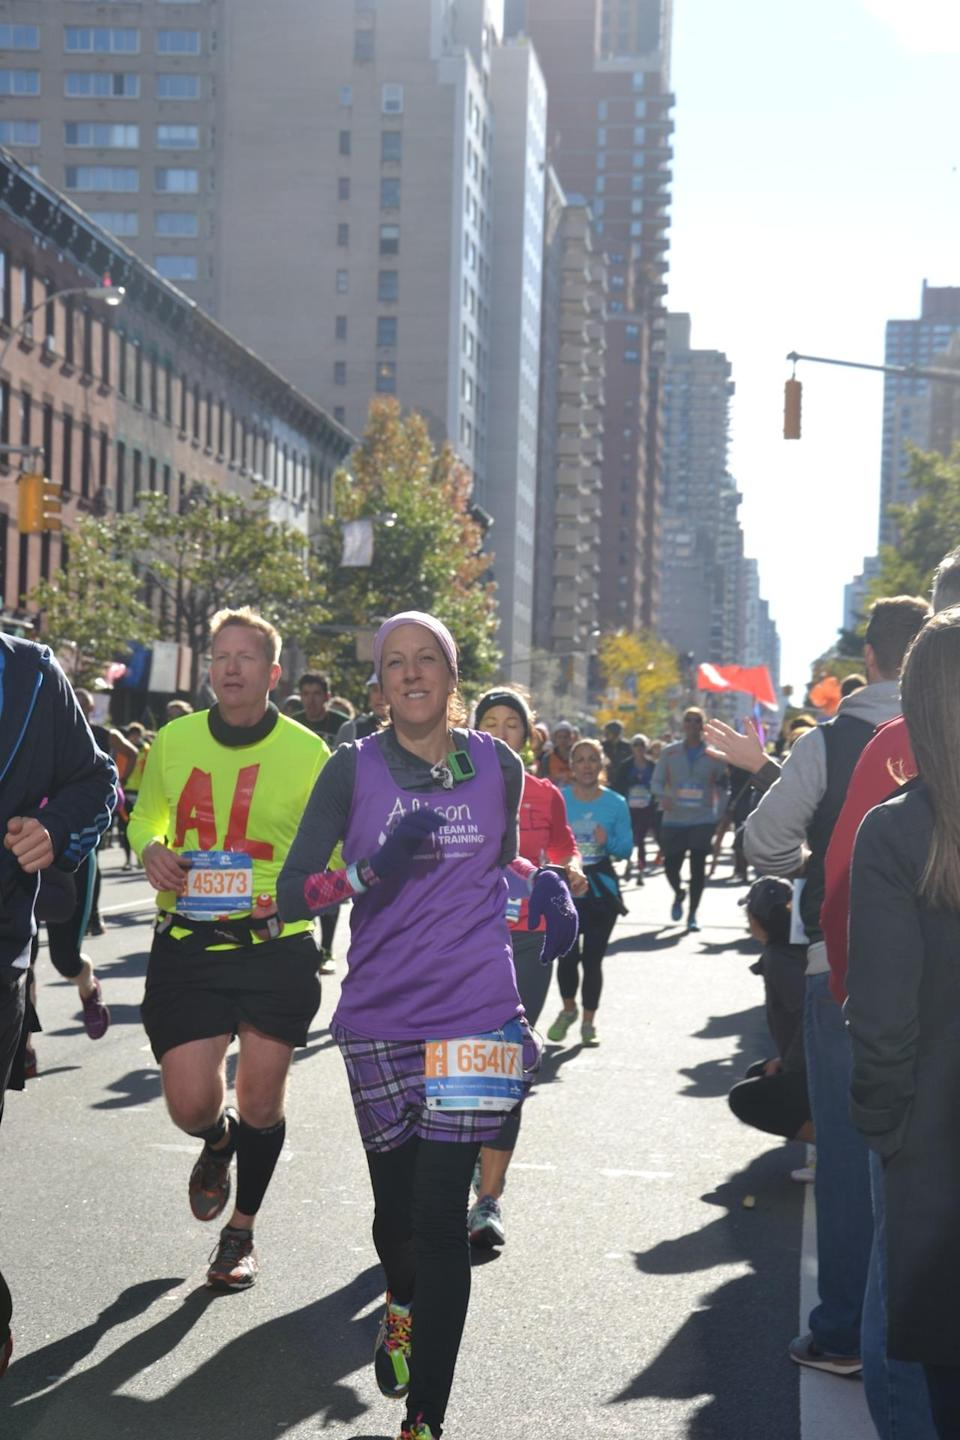 """<p>I wish I realized how both life-changing and addicting this is! I gained a group of like-minded (some would say """"nutty"""") friends with whom I now plan race-cations — vacations around racing. </p><p><i>—Alison O'Brien, 43, Union, New Jersey . Finisher of 18 full marathons and 50 half marathons; raised $14,000 to date for the Leukemia and Lymphoma Society's <a href=""""http://www.teamintraining.org/"""" rel=""""nofollow noopener"""" target=""""_blank"""" data-ylk=""""slk:Team in Training"""" class=""""link rapid-noclick-resp"""">Team in Training</a>.</i><br></p>"""